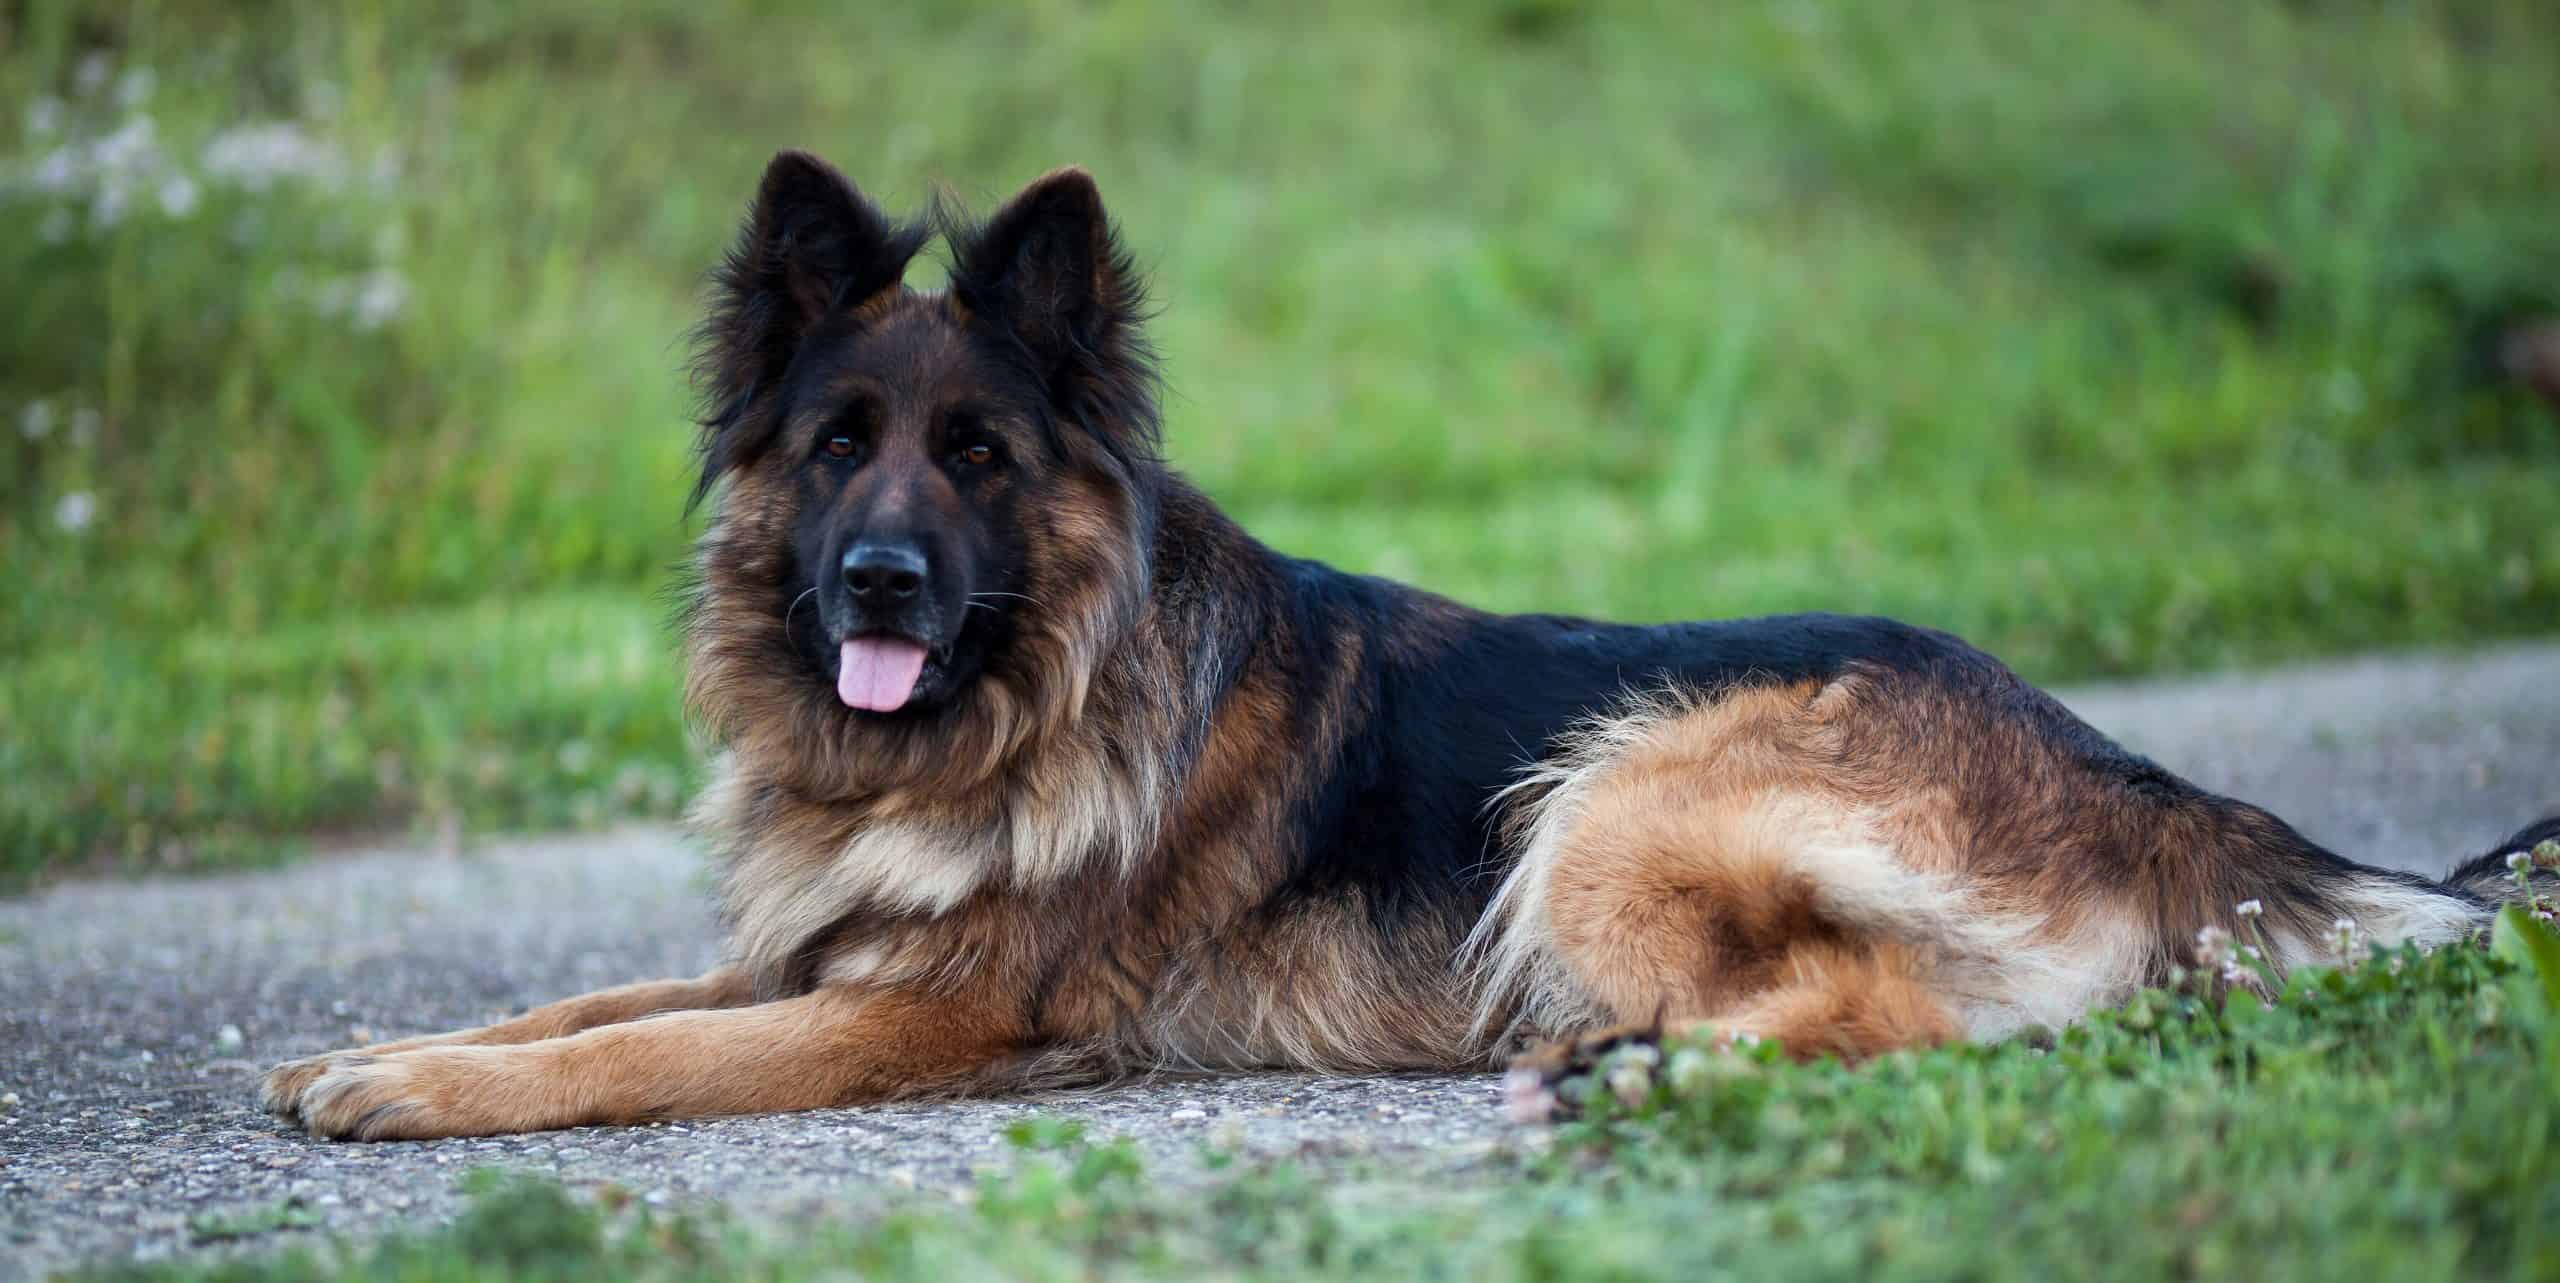 He looks like a Leo, right? thinking of naming your german shepherd dog? these names are great!